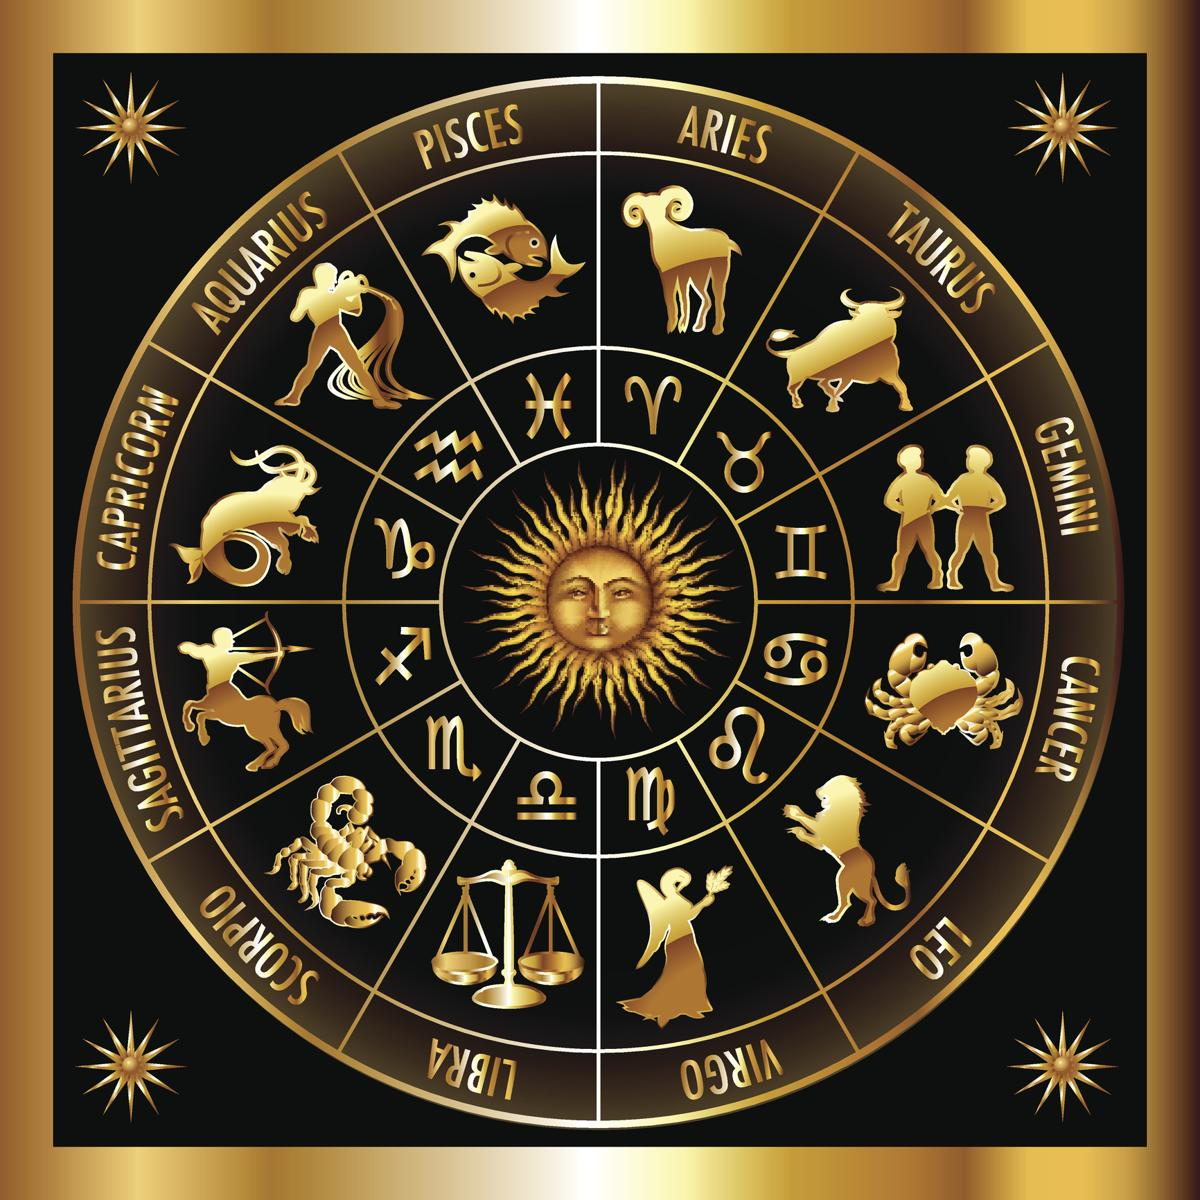 From astrologybay.com